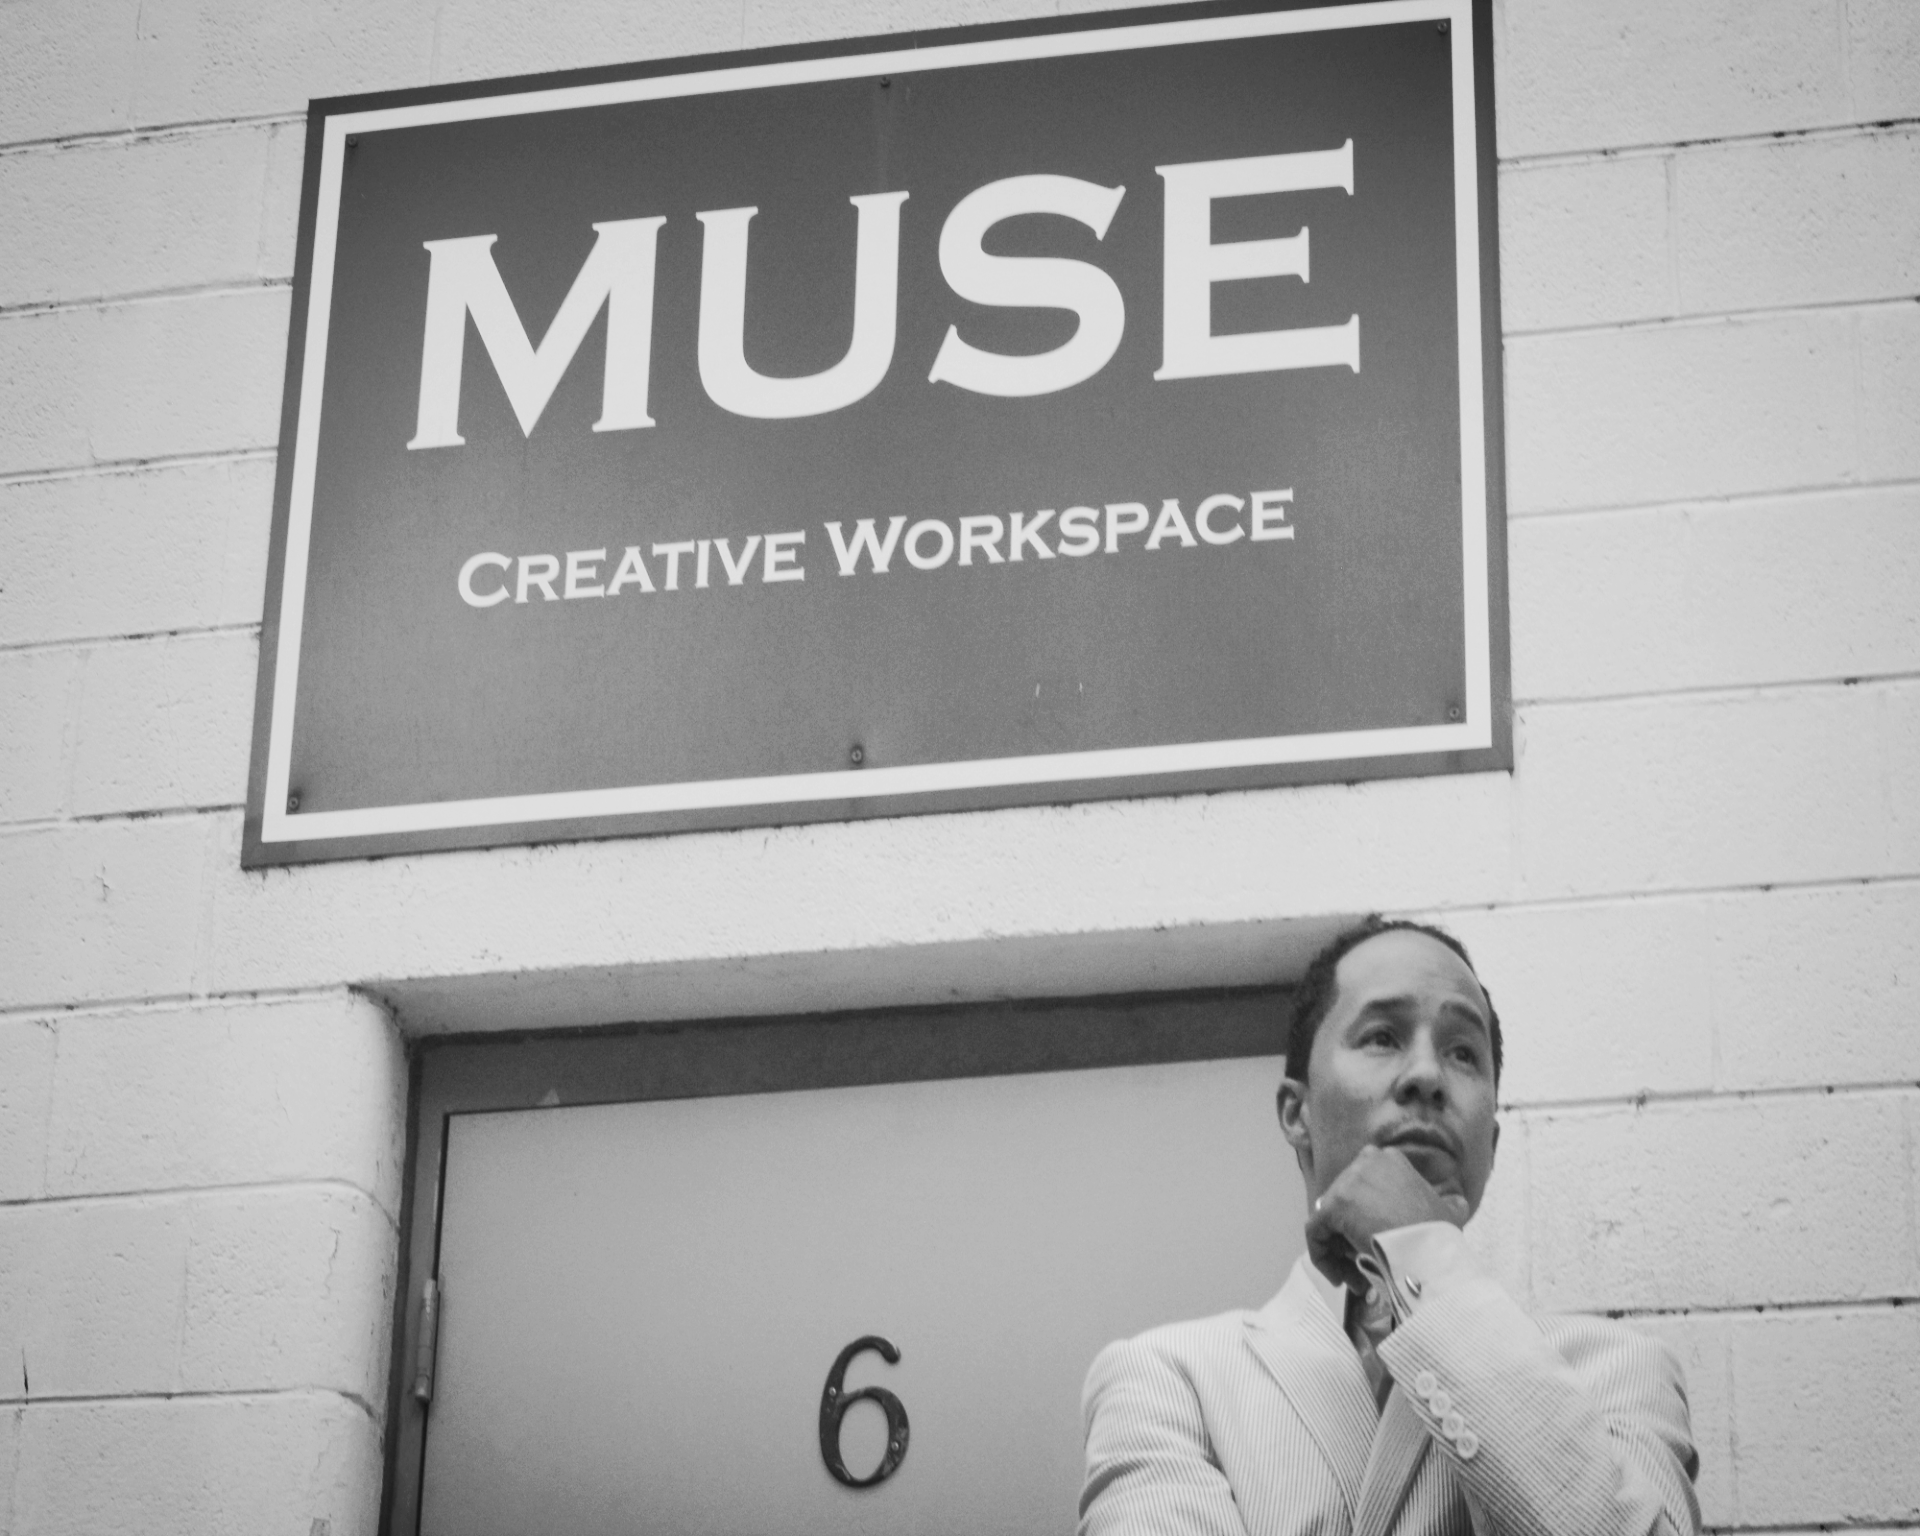 CEO Muse Creative Workspace